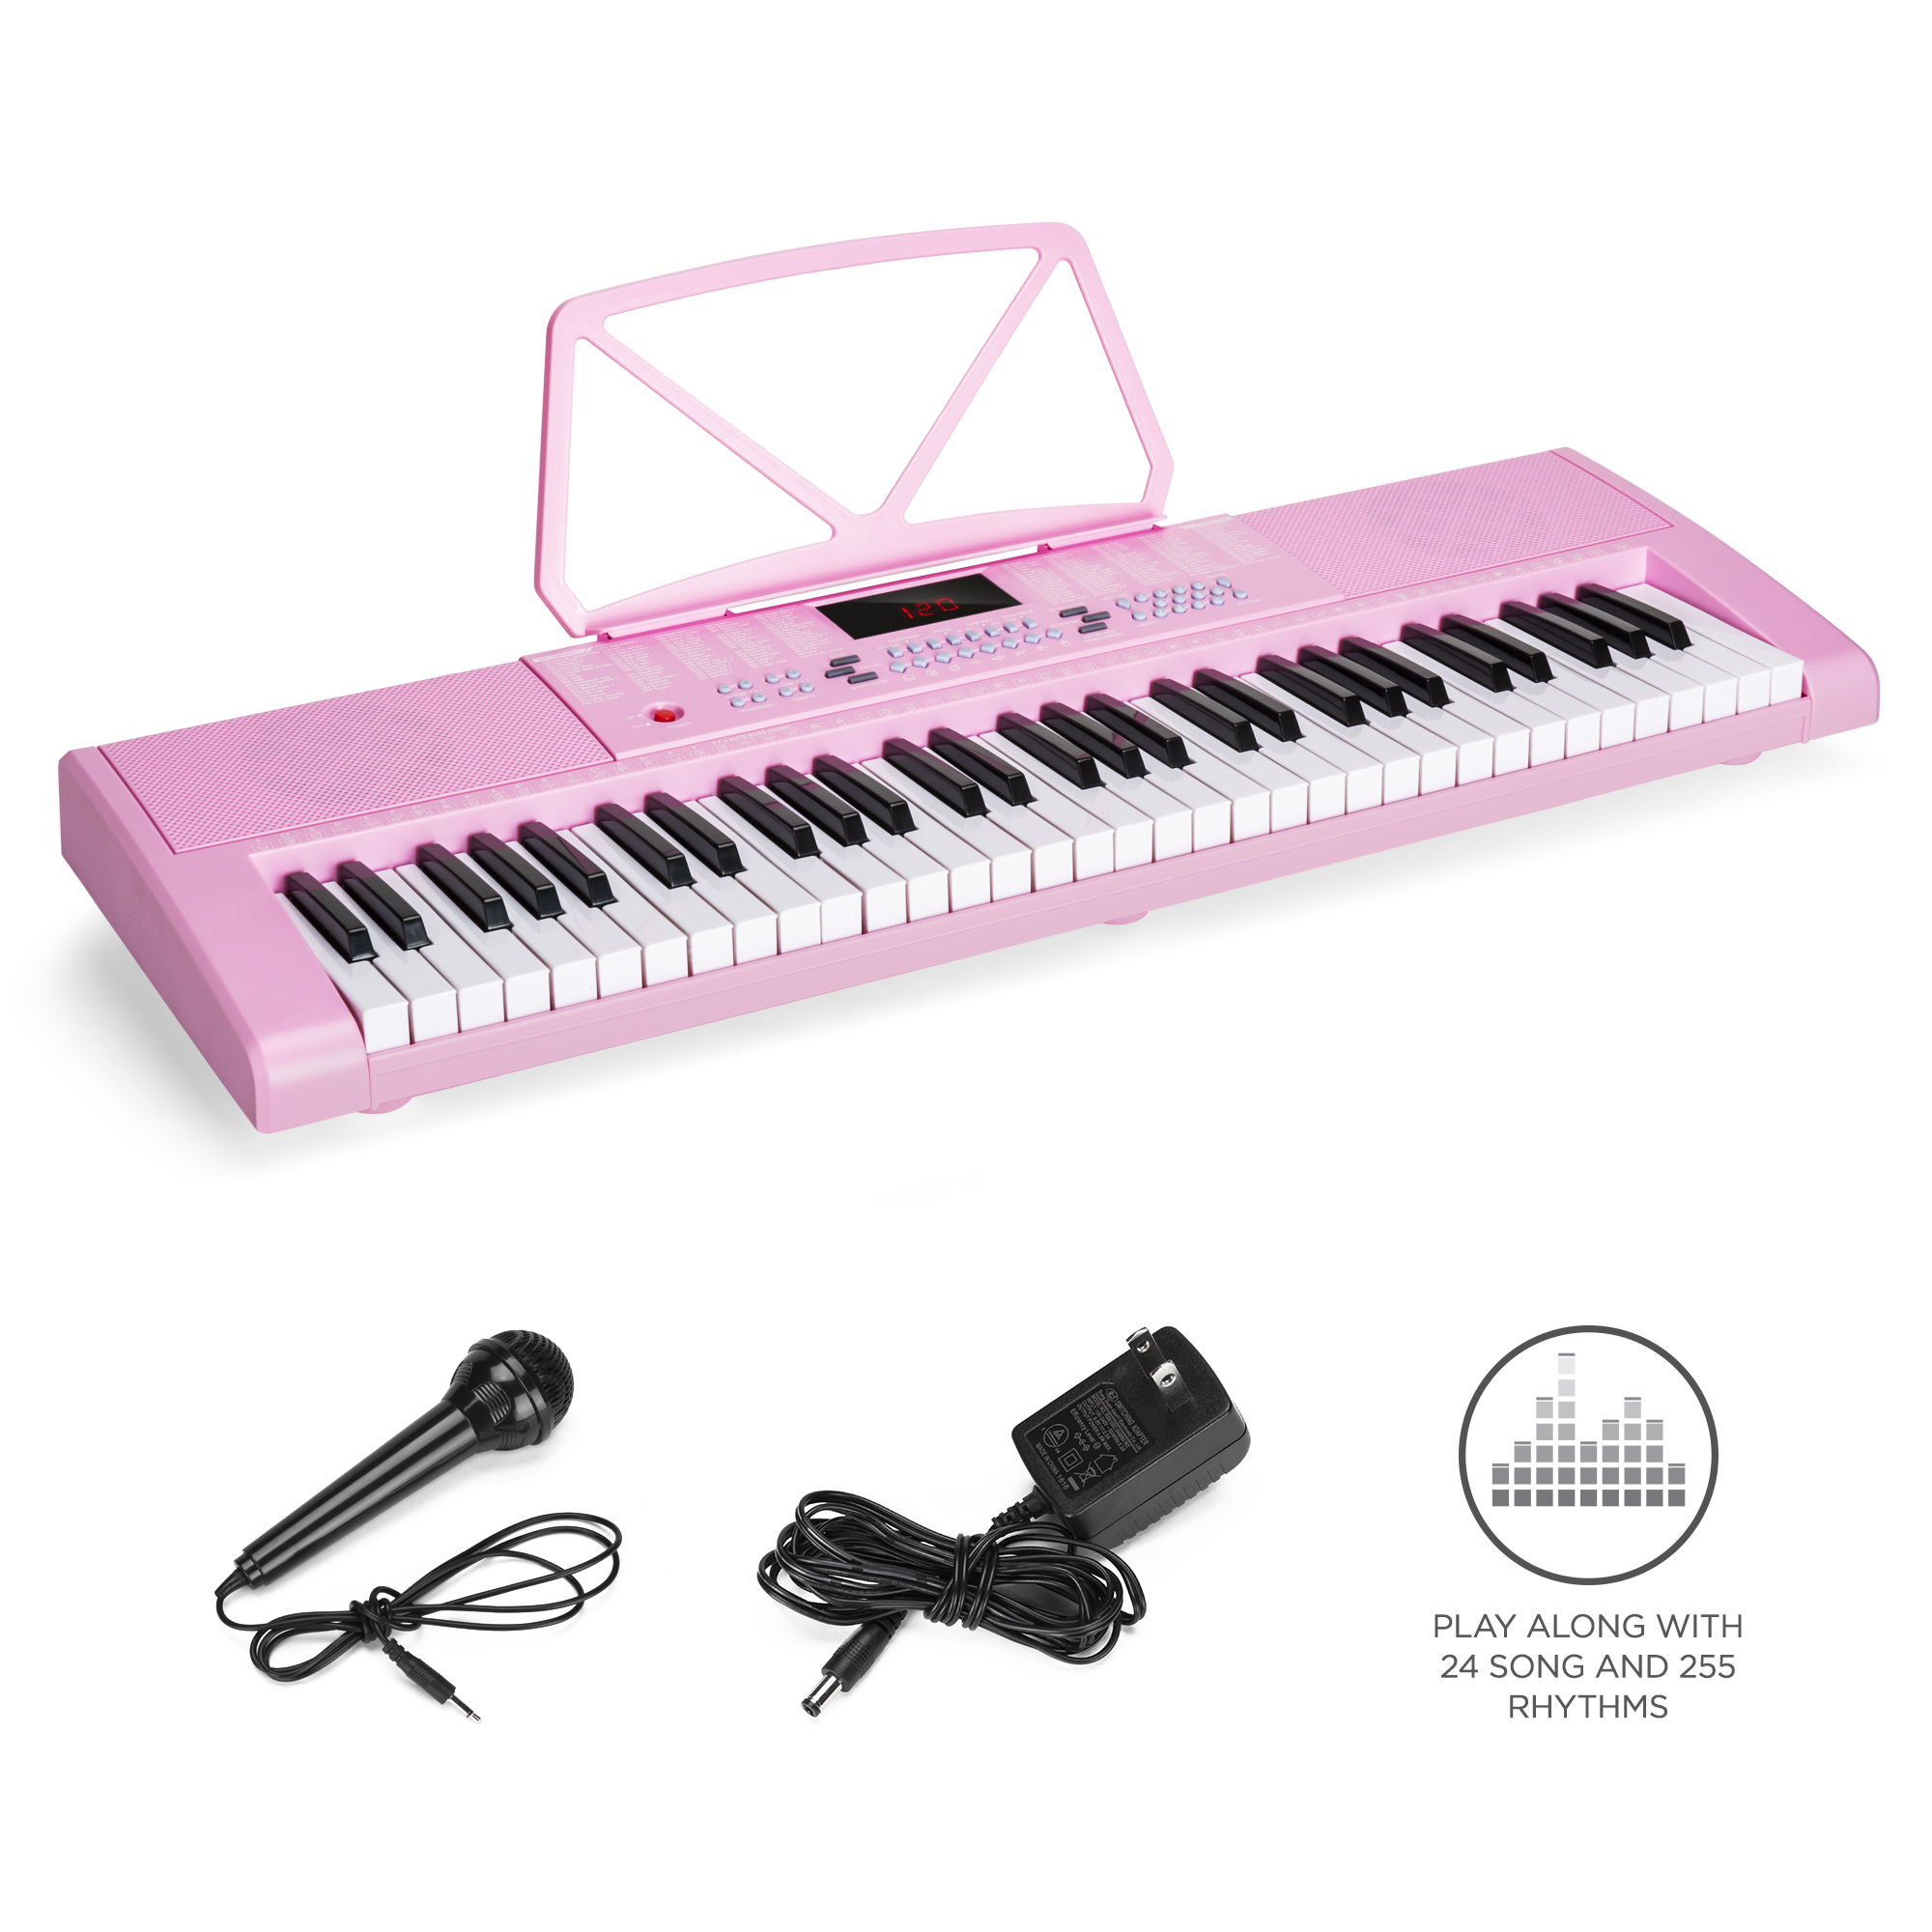 Best Choice Products 61-Key Portable Simulation Keyboard Piano Musical Instrument w/ LED Screen, Built-In Dual Speakers, Record & Playback Function, Microphone, Headphone Jack - Pink